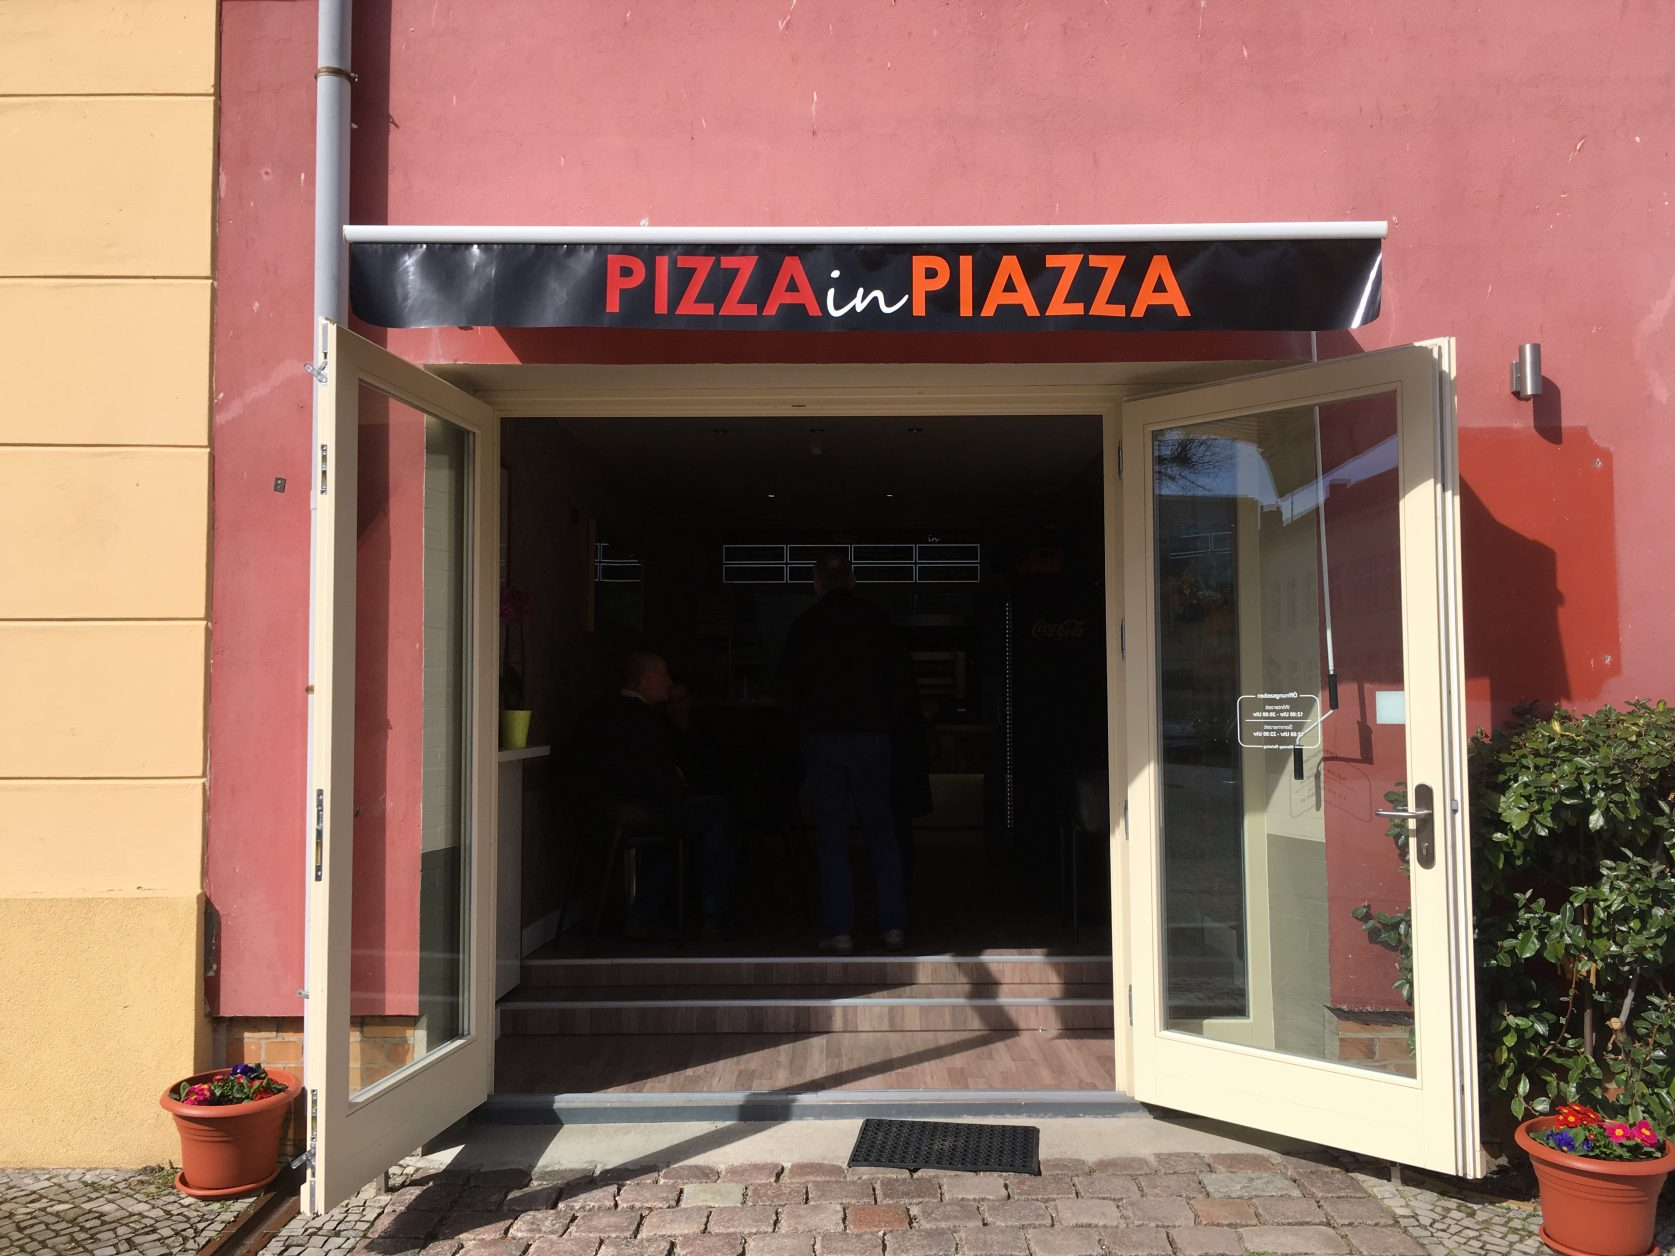 Pizza in Piazza Werder/Havel, Foto: D.Weirauch